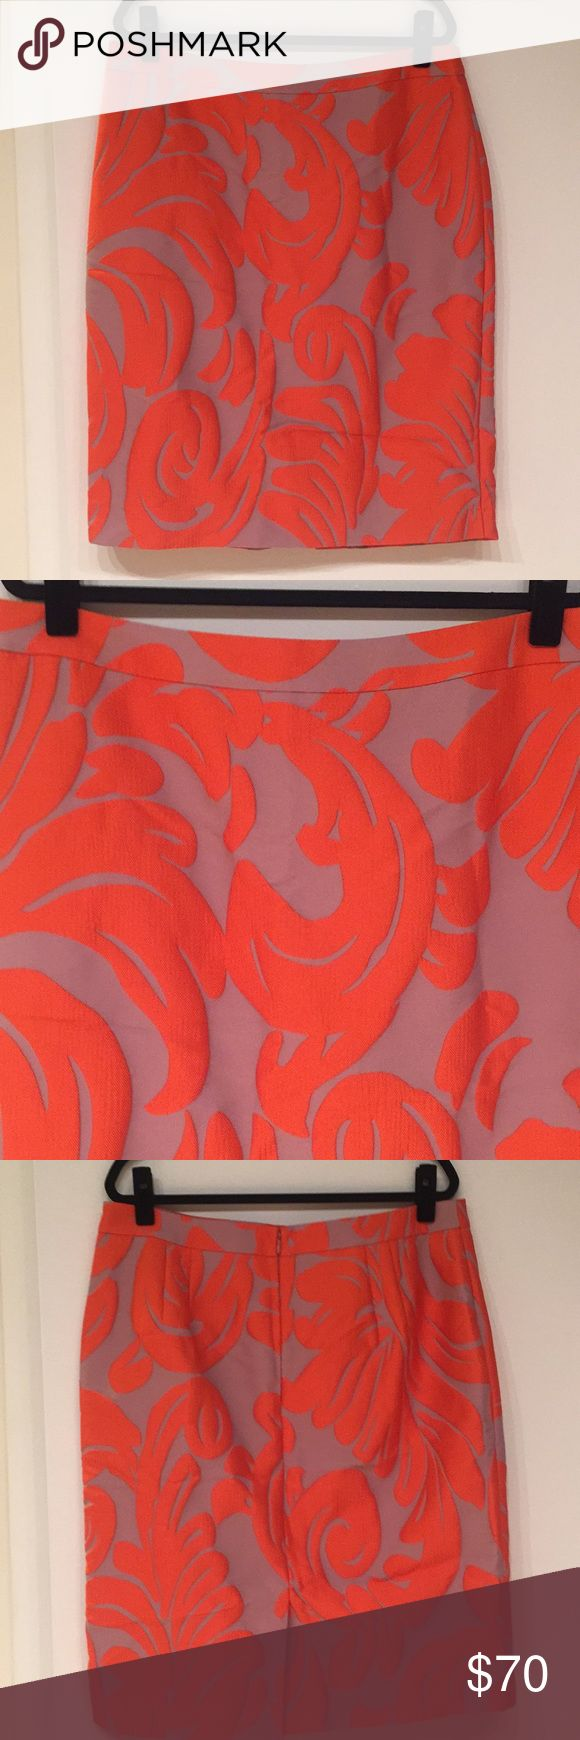 [NWOT] ANN TAYLOT pencil skirt Beautiful orange & purple pencil skirt from Ann Taylor. Size 16, has never been worn. Ann Taylor Skirts Pencil